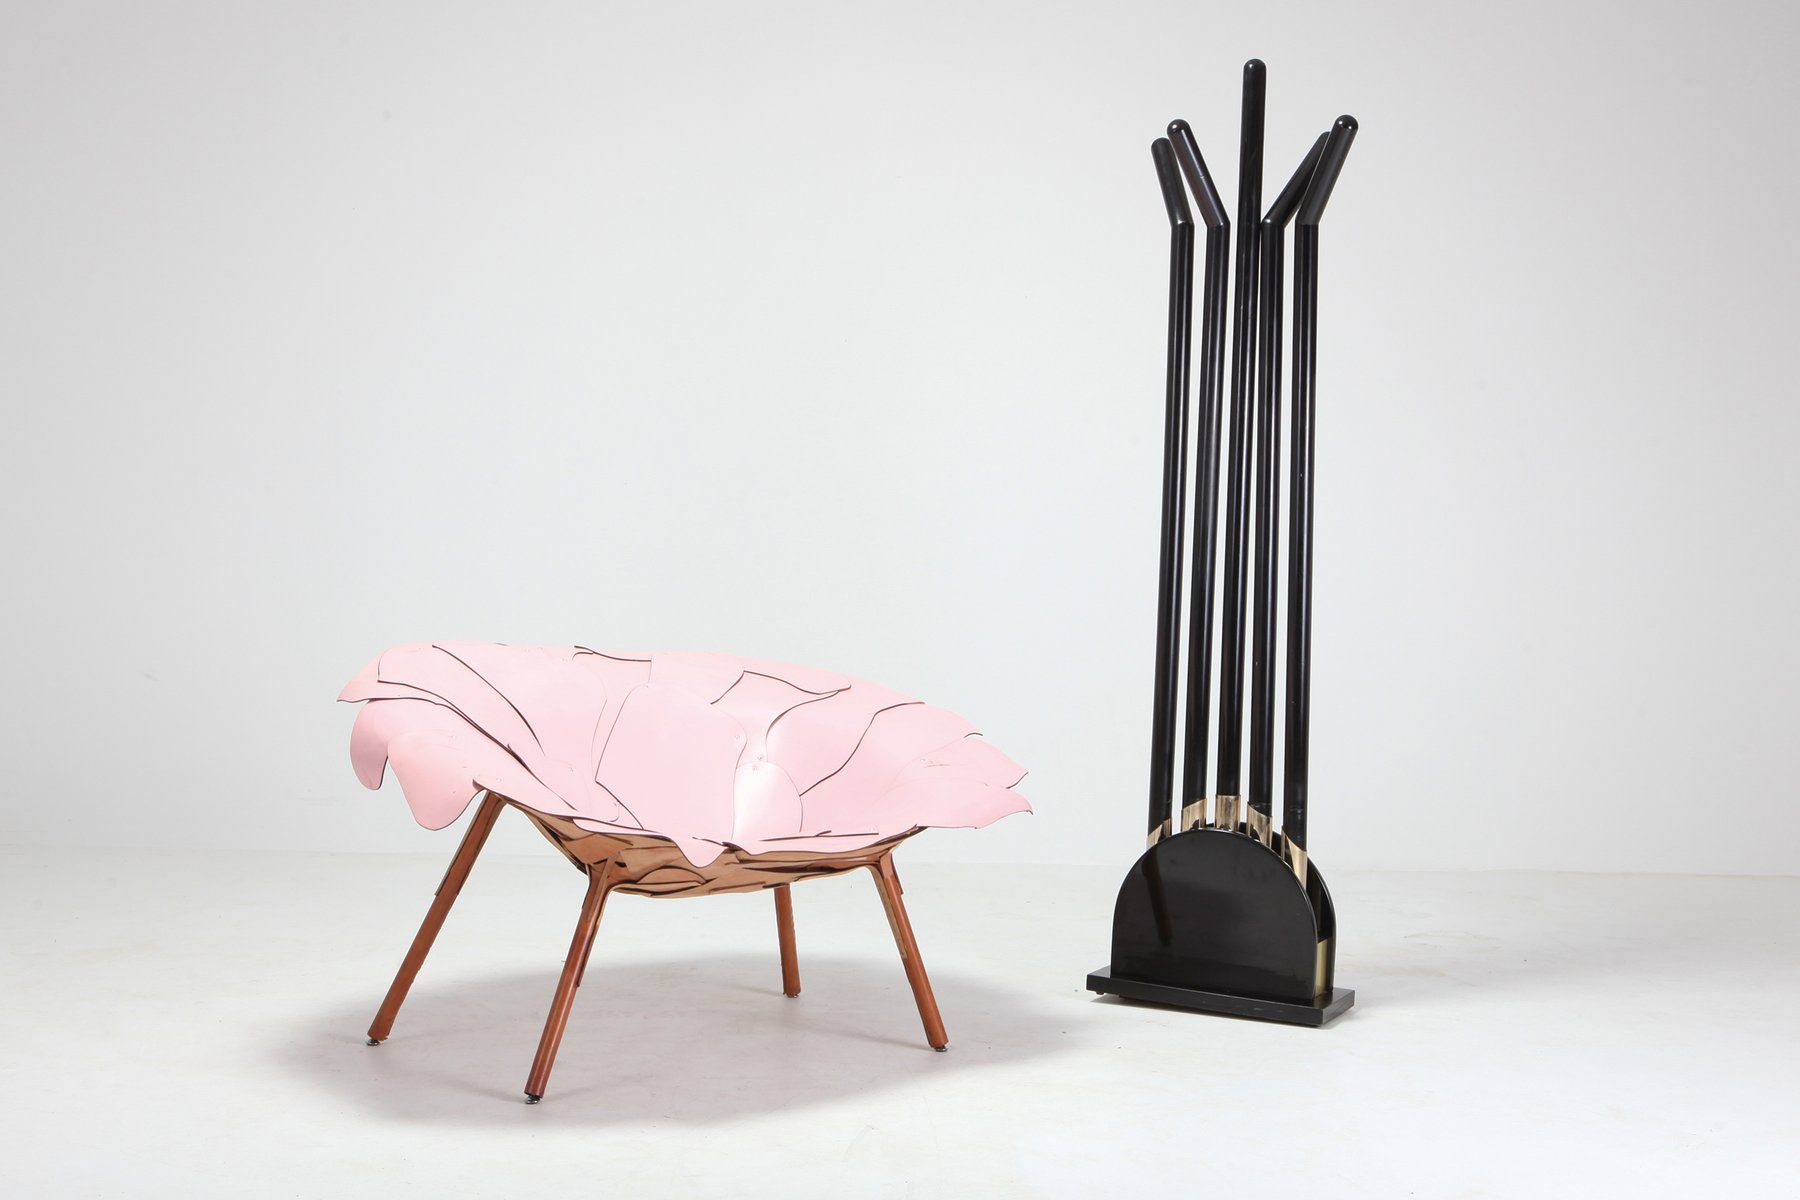 Aguape Chair By Campana Brothers For Edra, 2008 For Sale